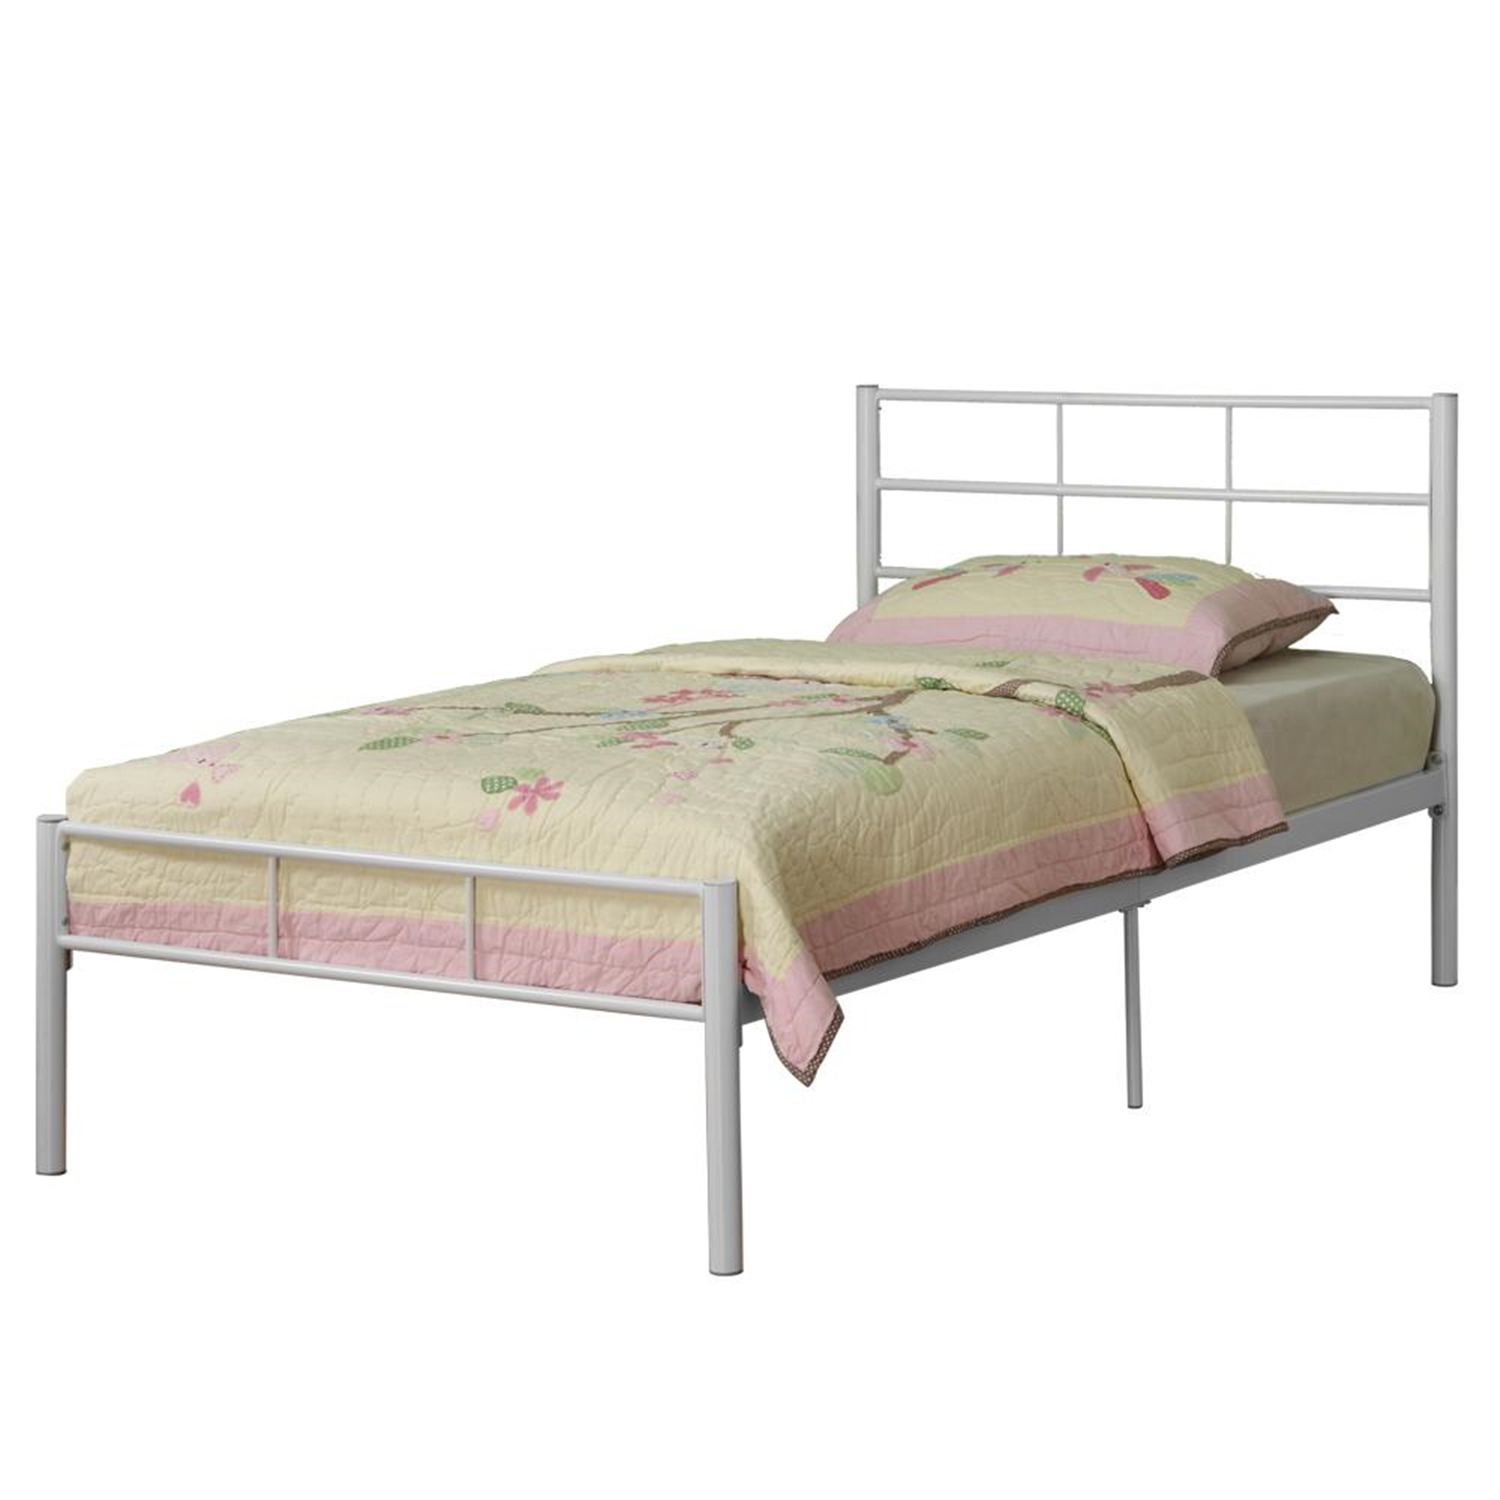 Walker edison twin metal bed frame by oj commerce for Twin bed frame